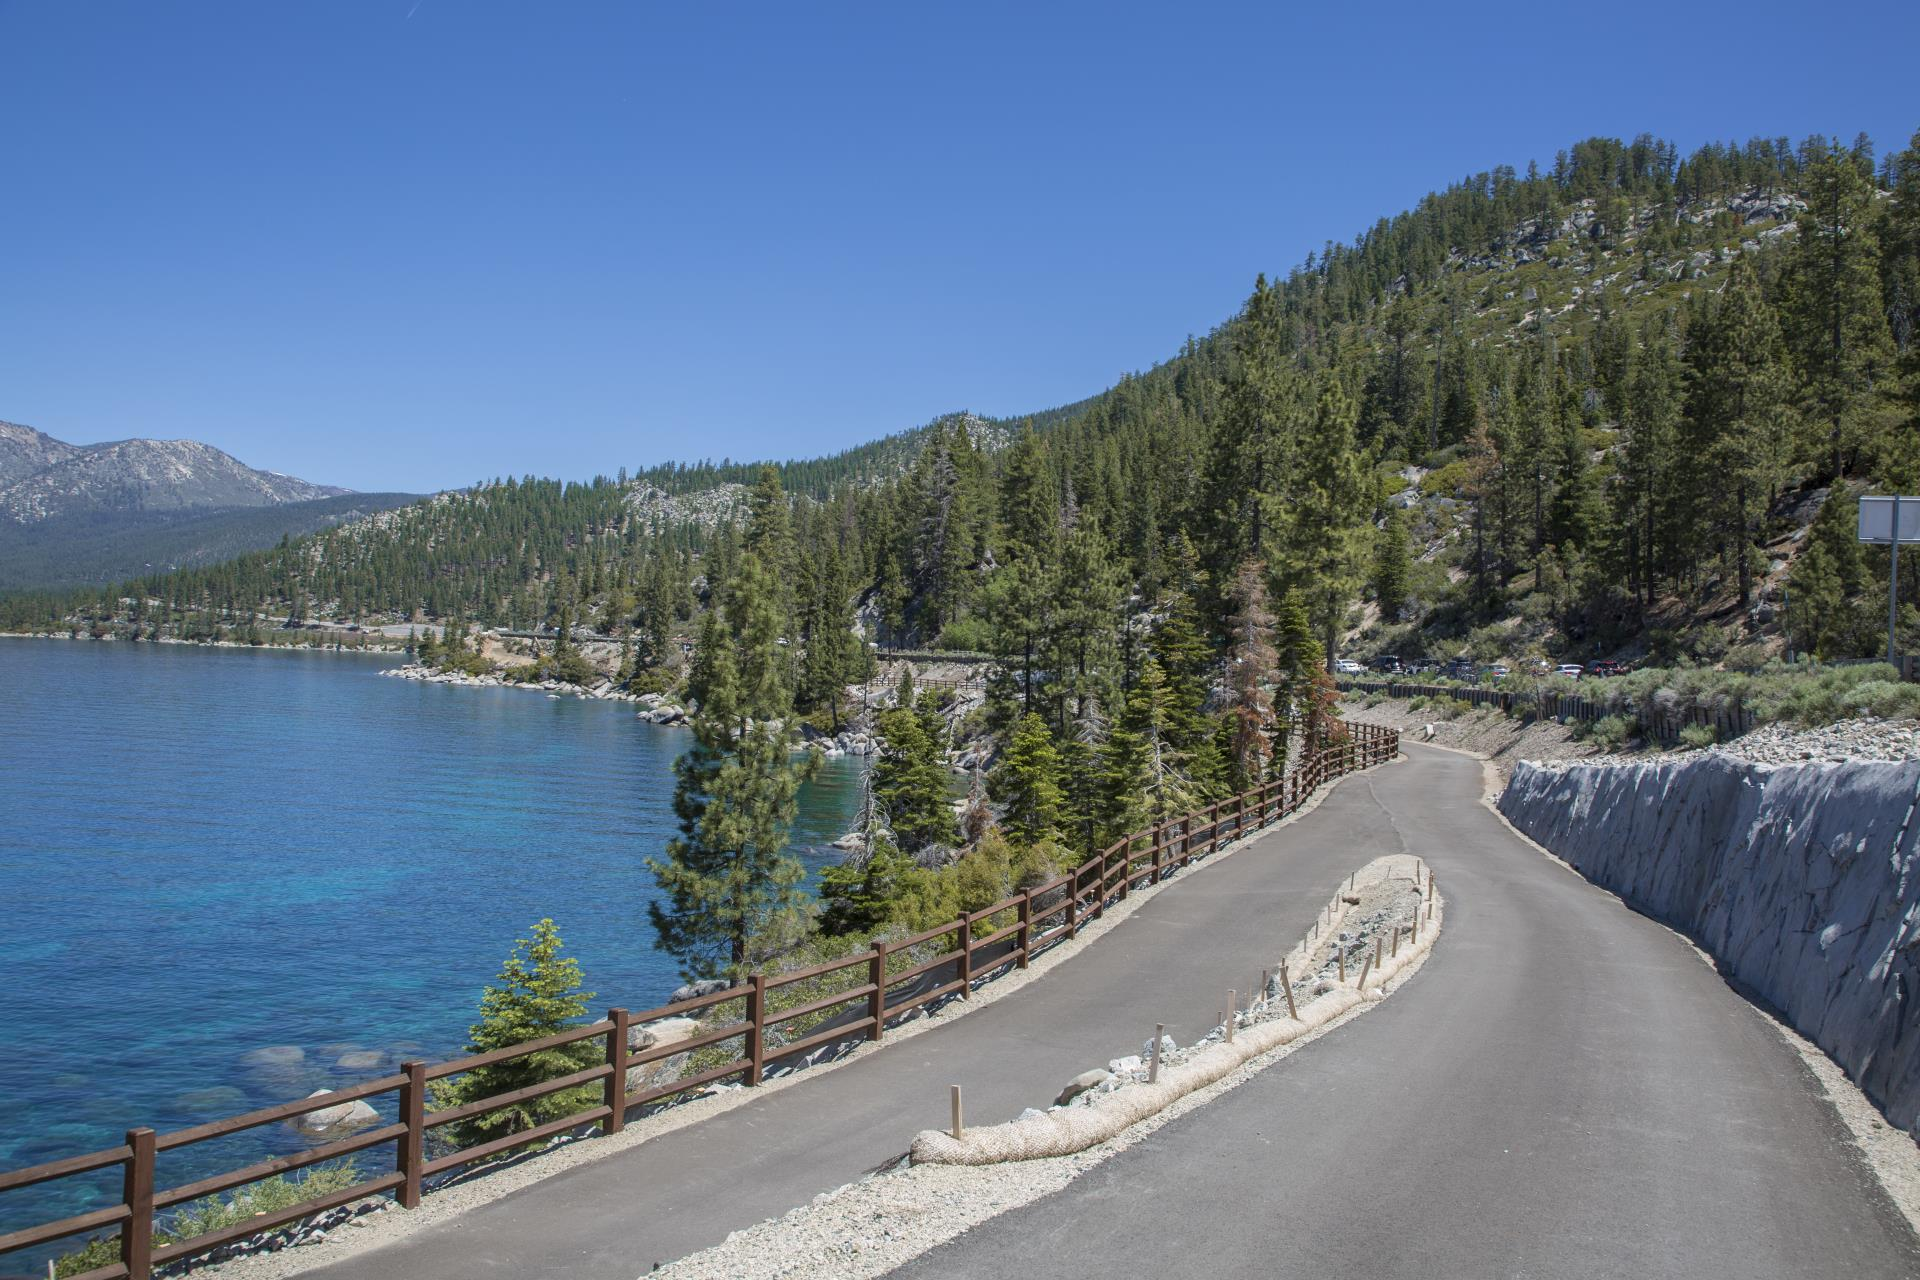 The SR 28 Shared Use Path in Lake Tahoe from June 2018